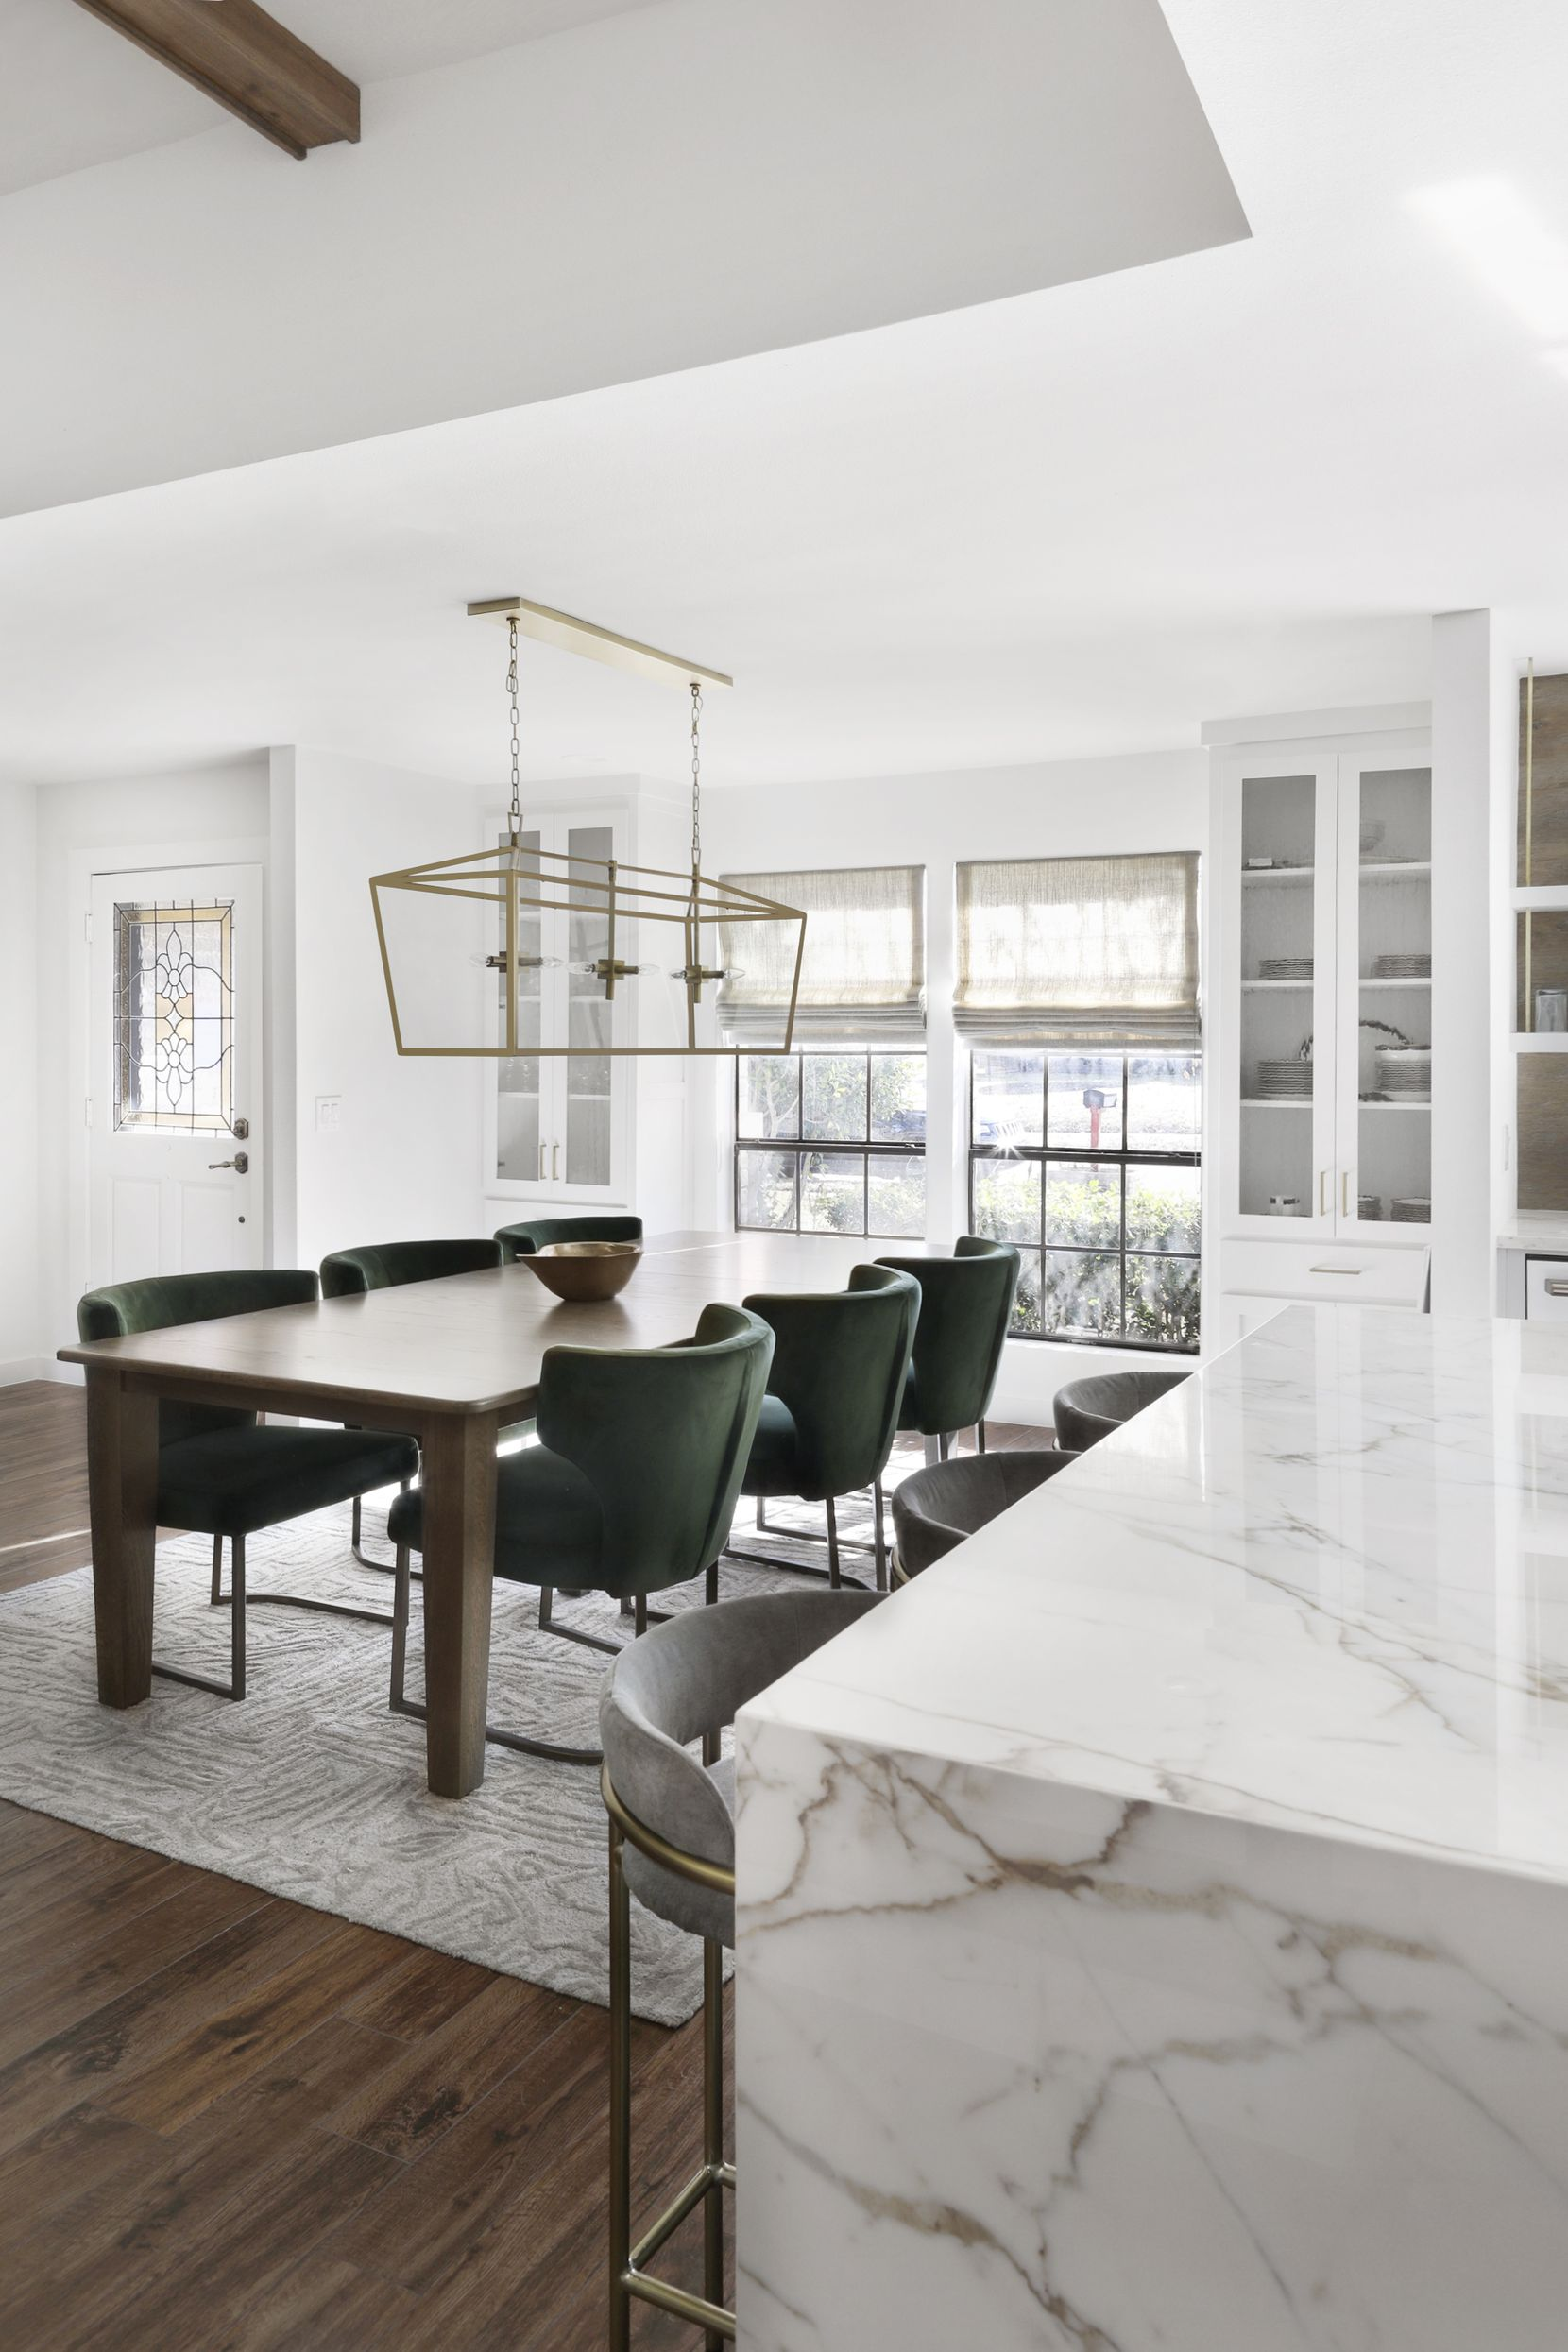 An example of the design style of Dallas-based Juliana Oliveira.